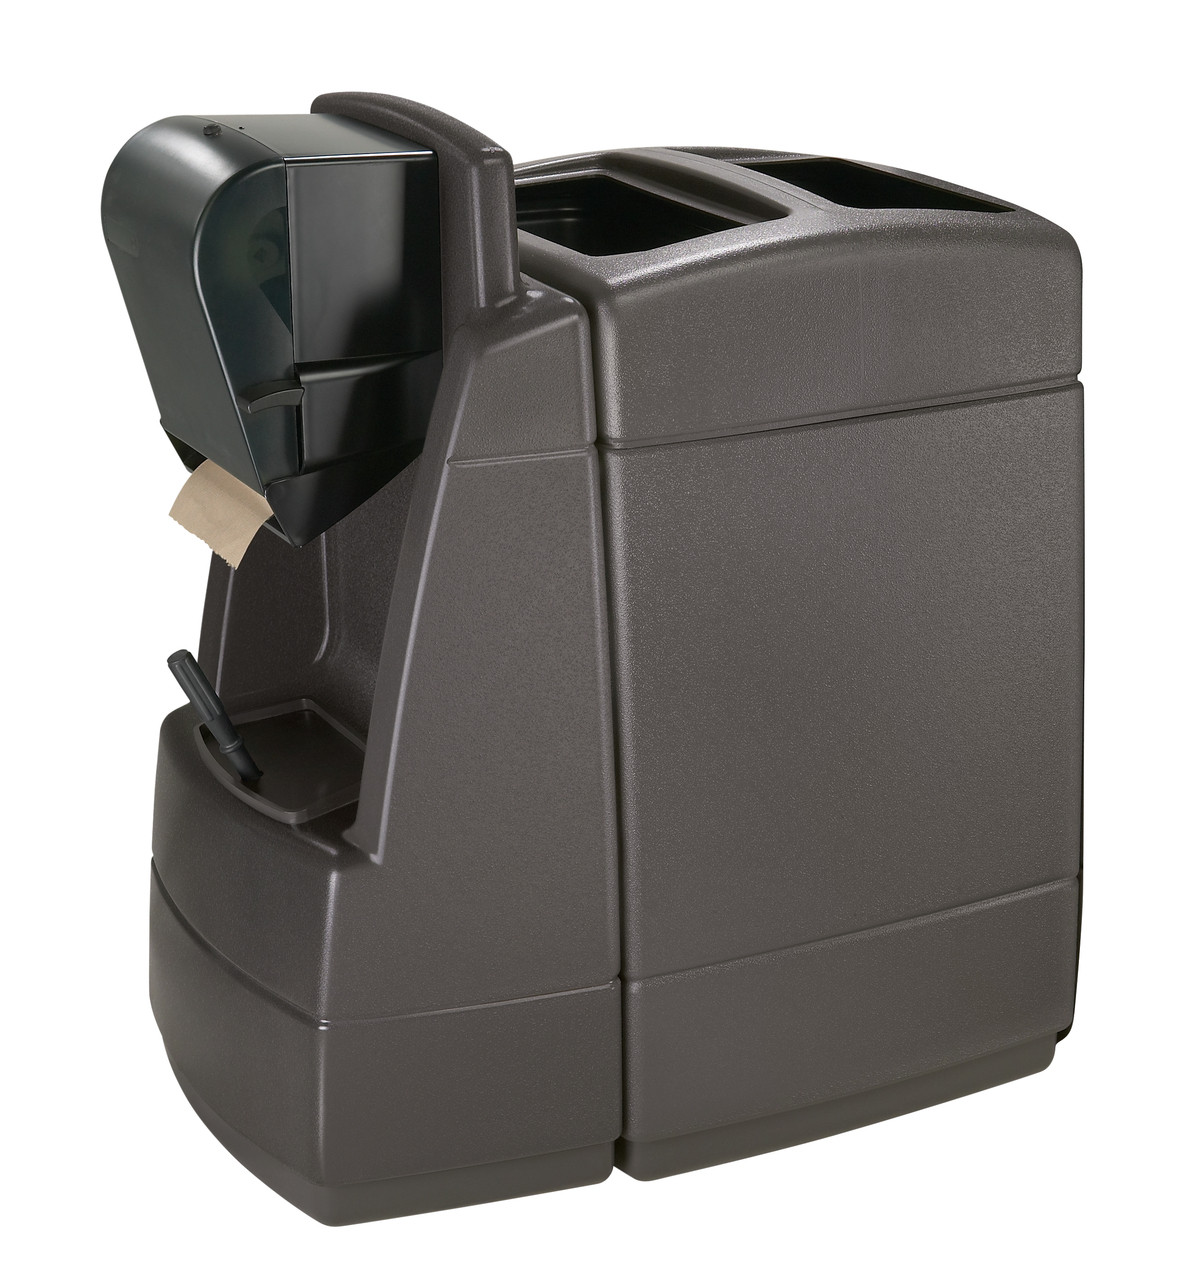 55 Gallon 75830599 Single Sided Gas Station Outdoor Trash Can Maui 1